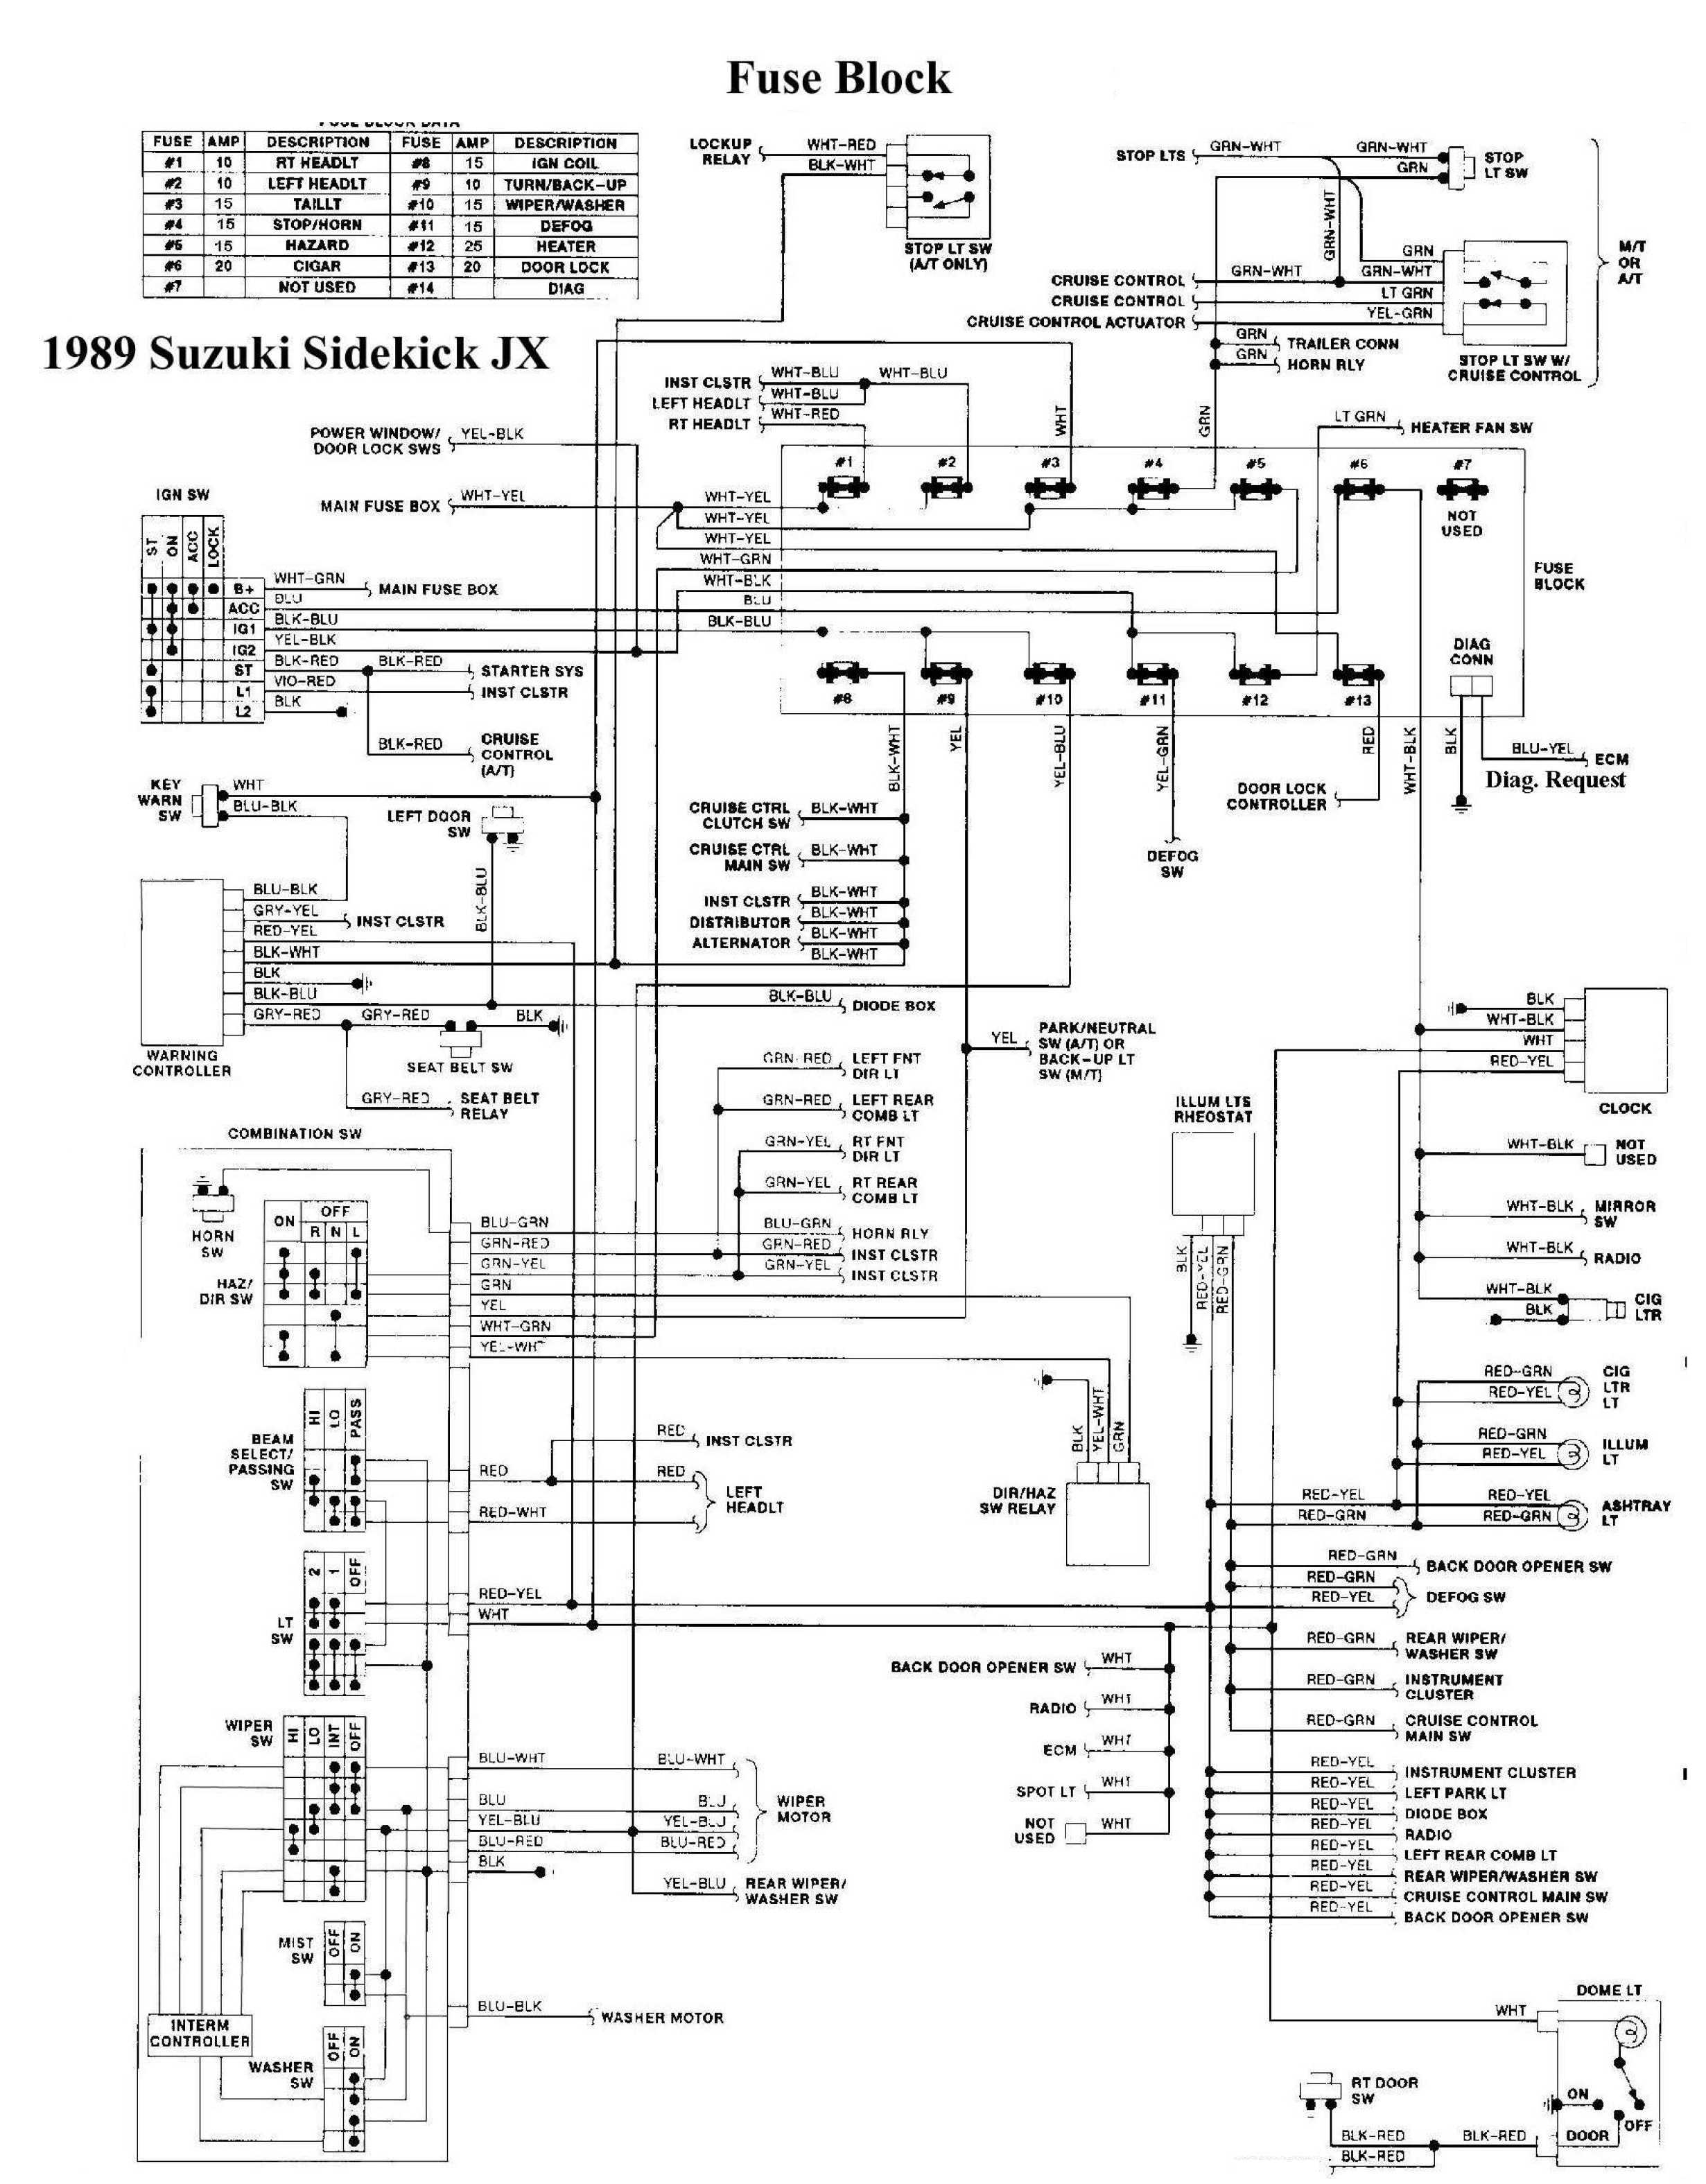 89_elect3a headlight switch problem! suzuki forums suzuki forum site 1987 suzuki samurai fuse box diagram at soozxer.org